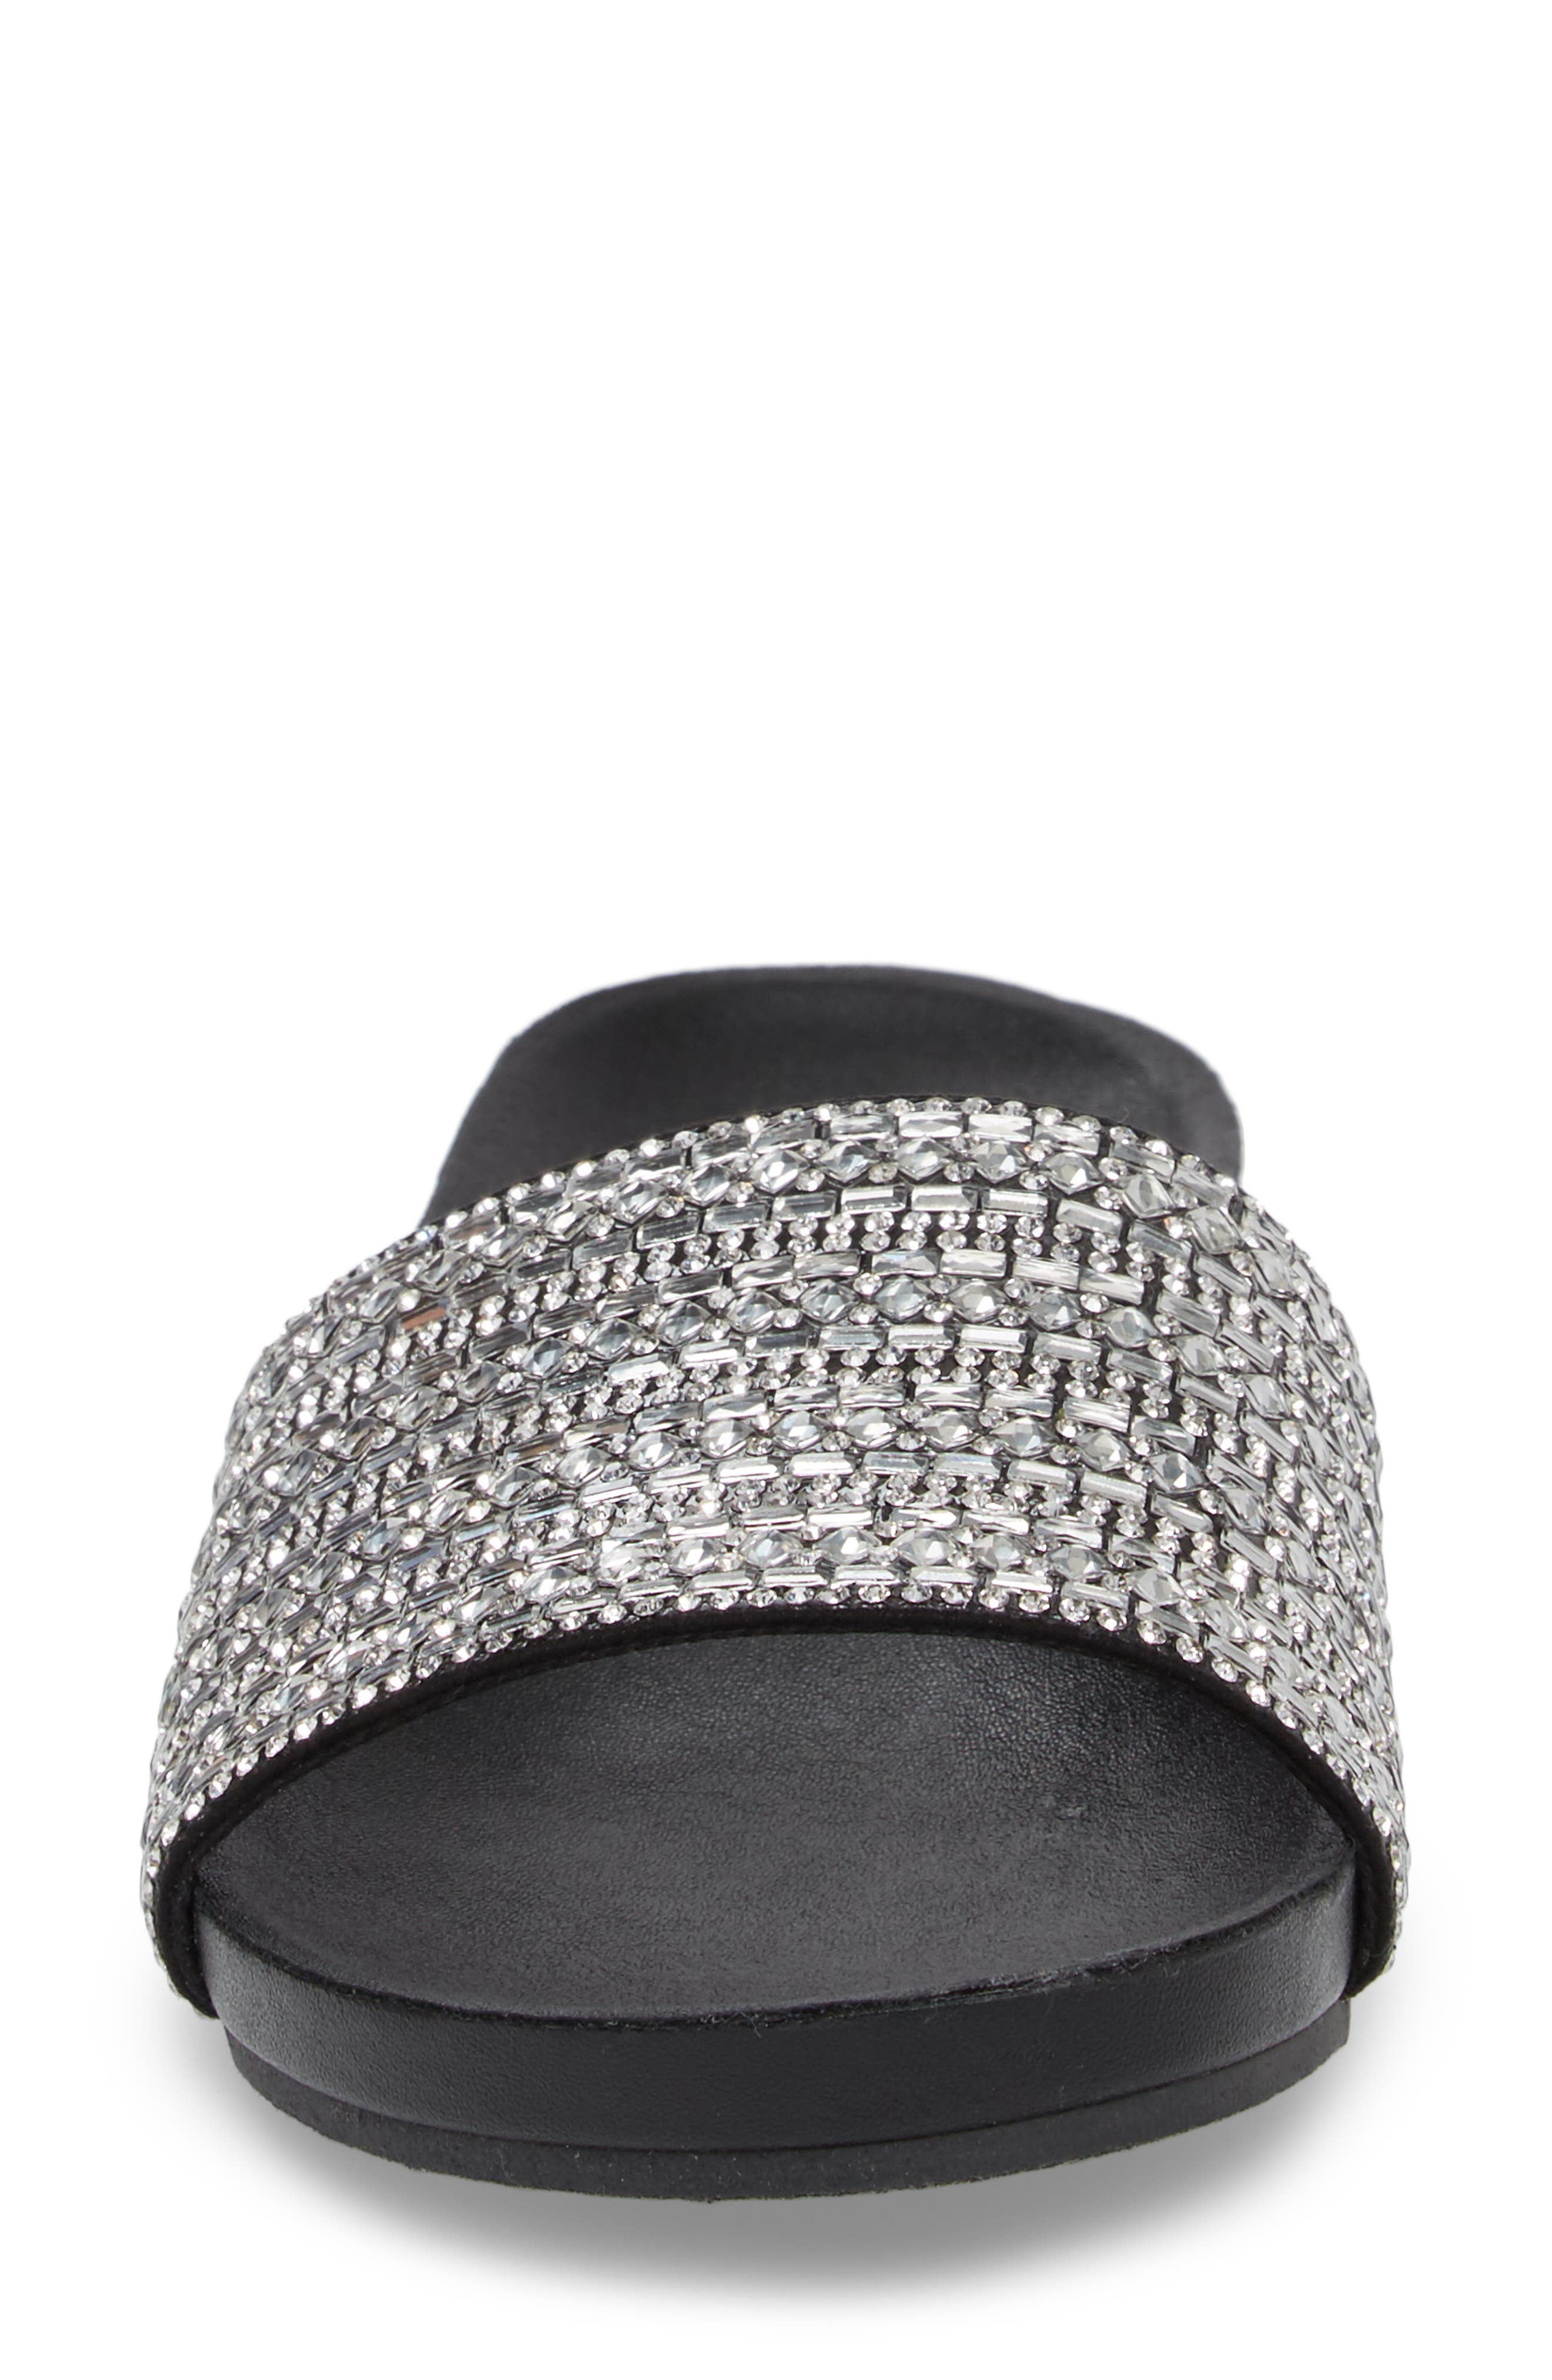 Alternate Image 4  - Steve Madden Dazzle Embellished Slide Sandal (Women)